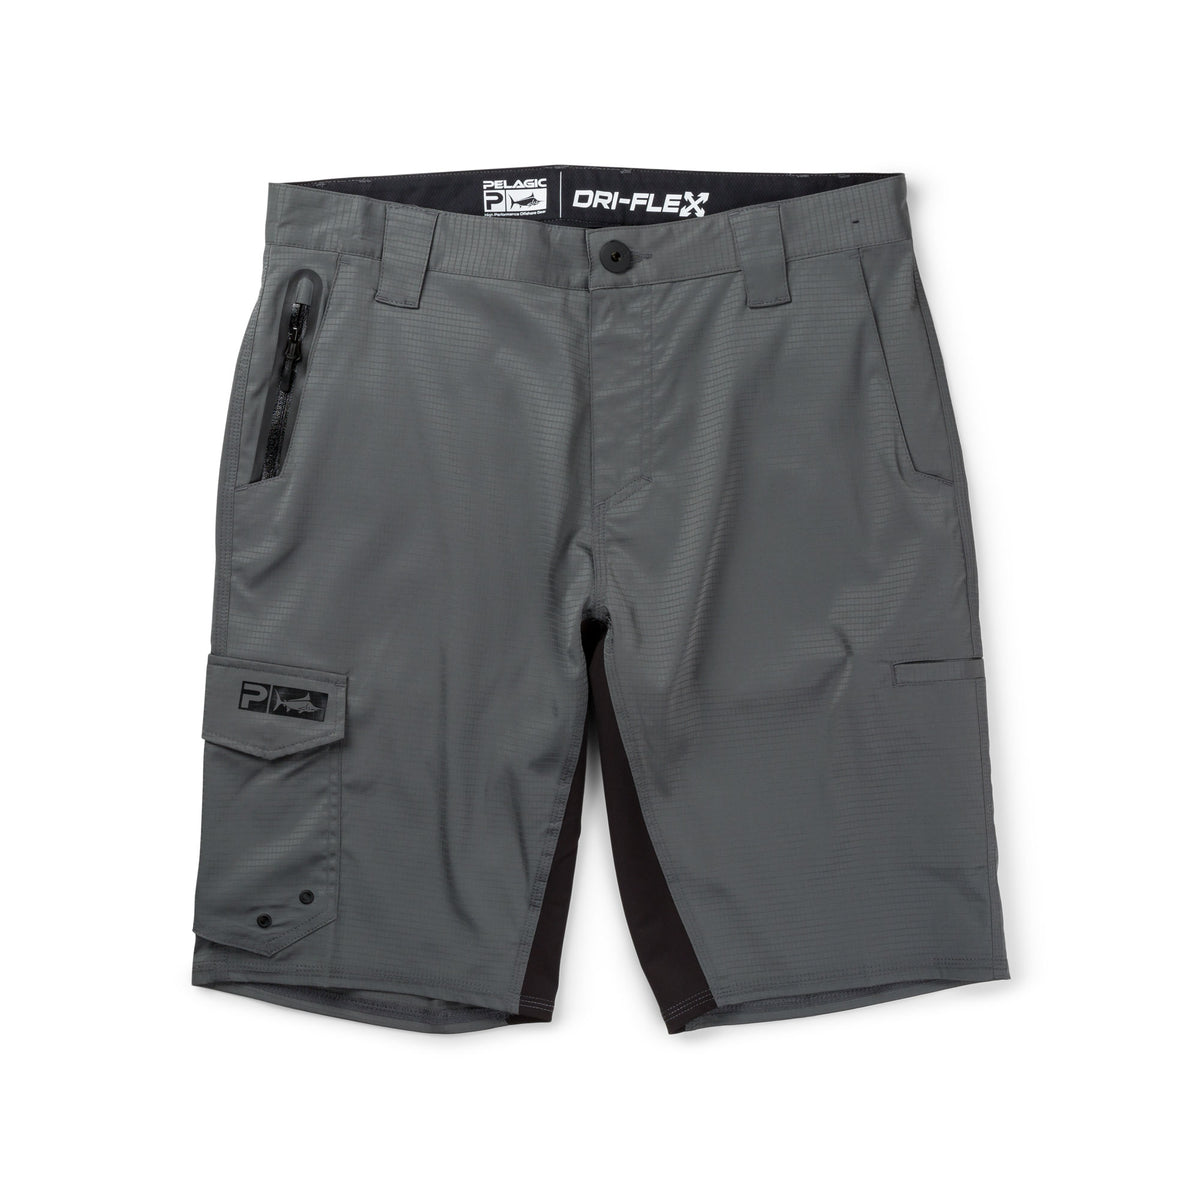 Dri-Flex Hybrid II Fishing Shorts Big Image - 1